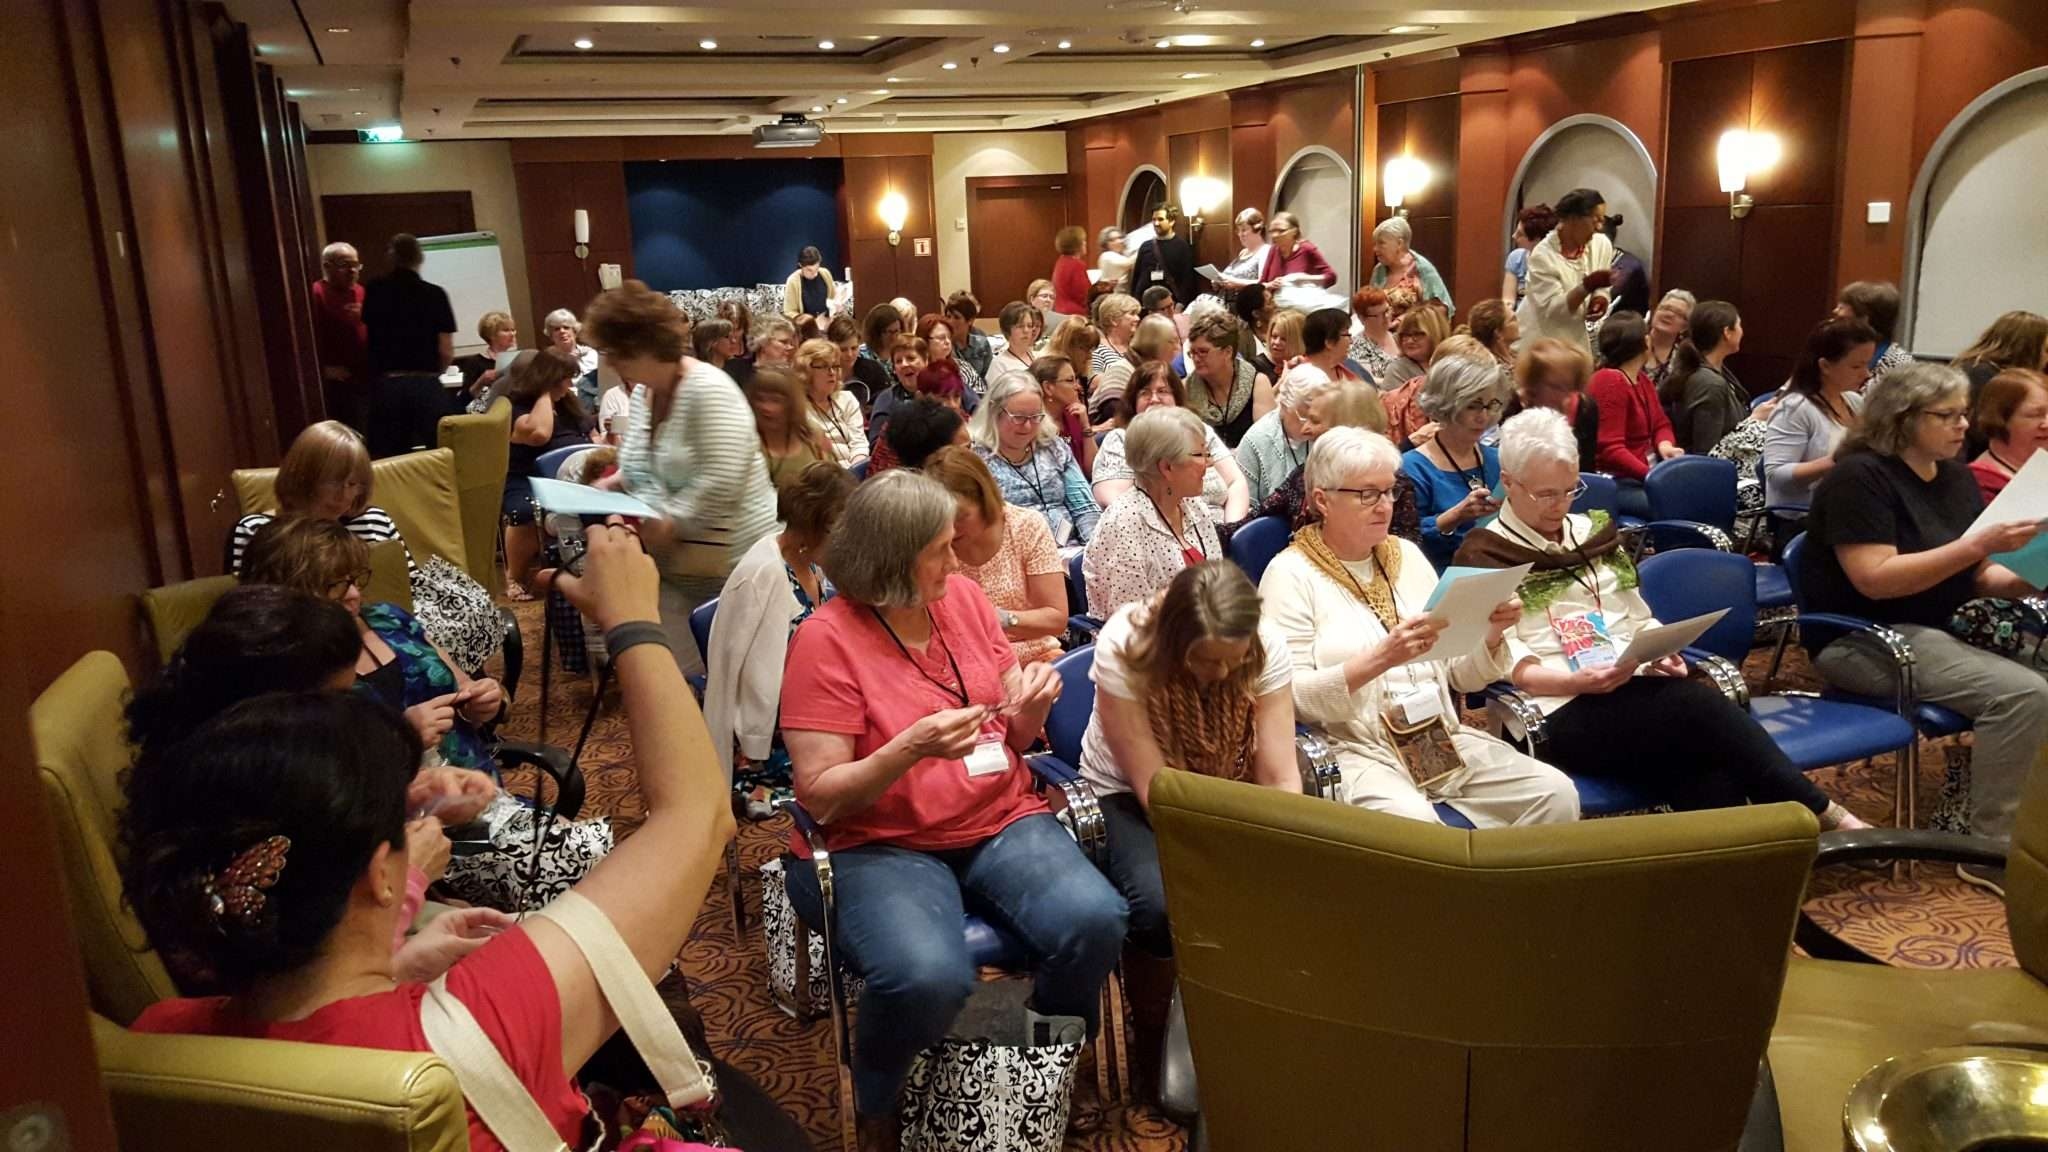 This is what over 100 knitters look like on a cruise!